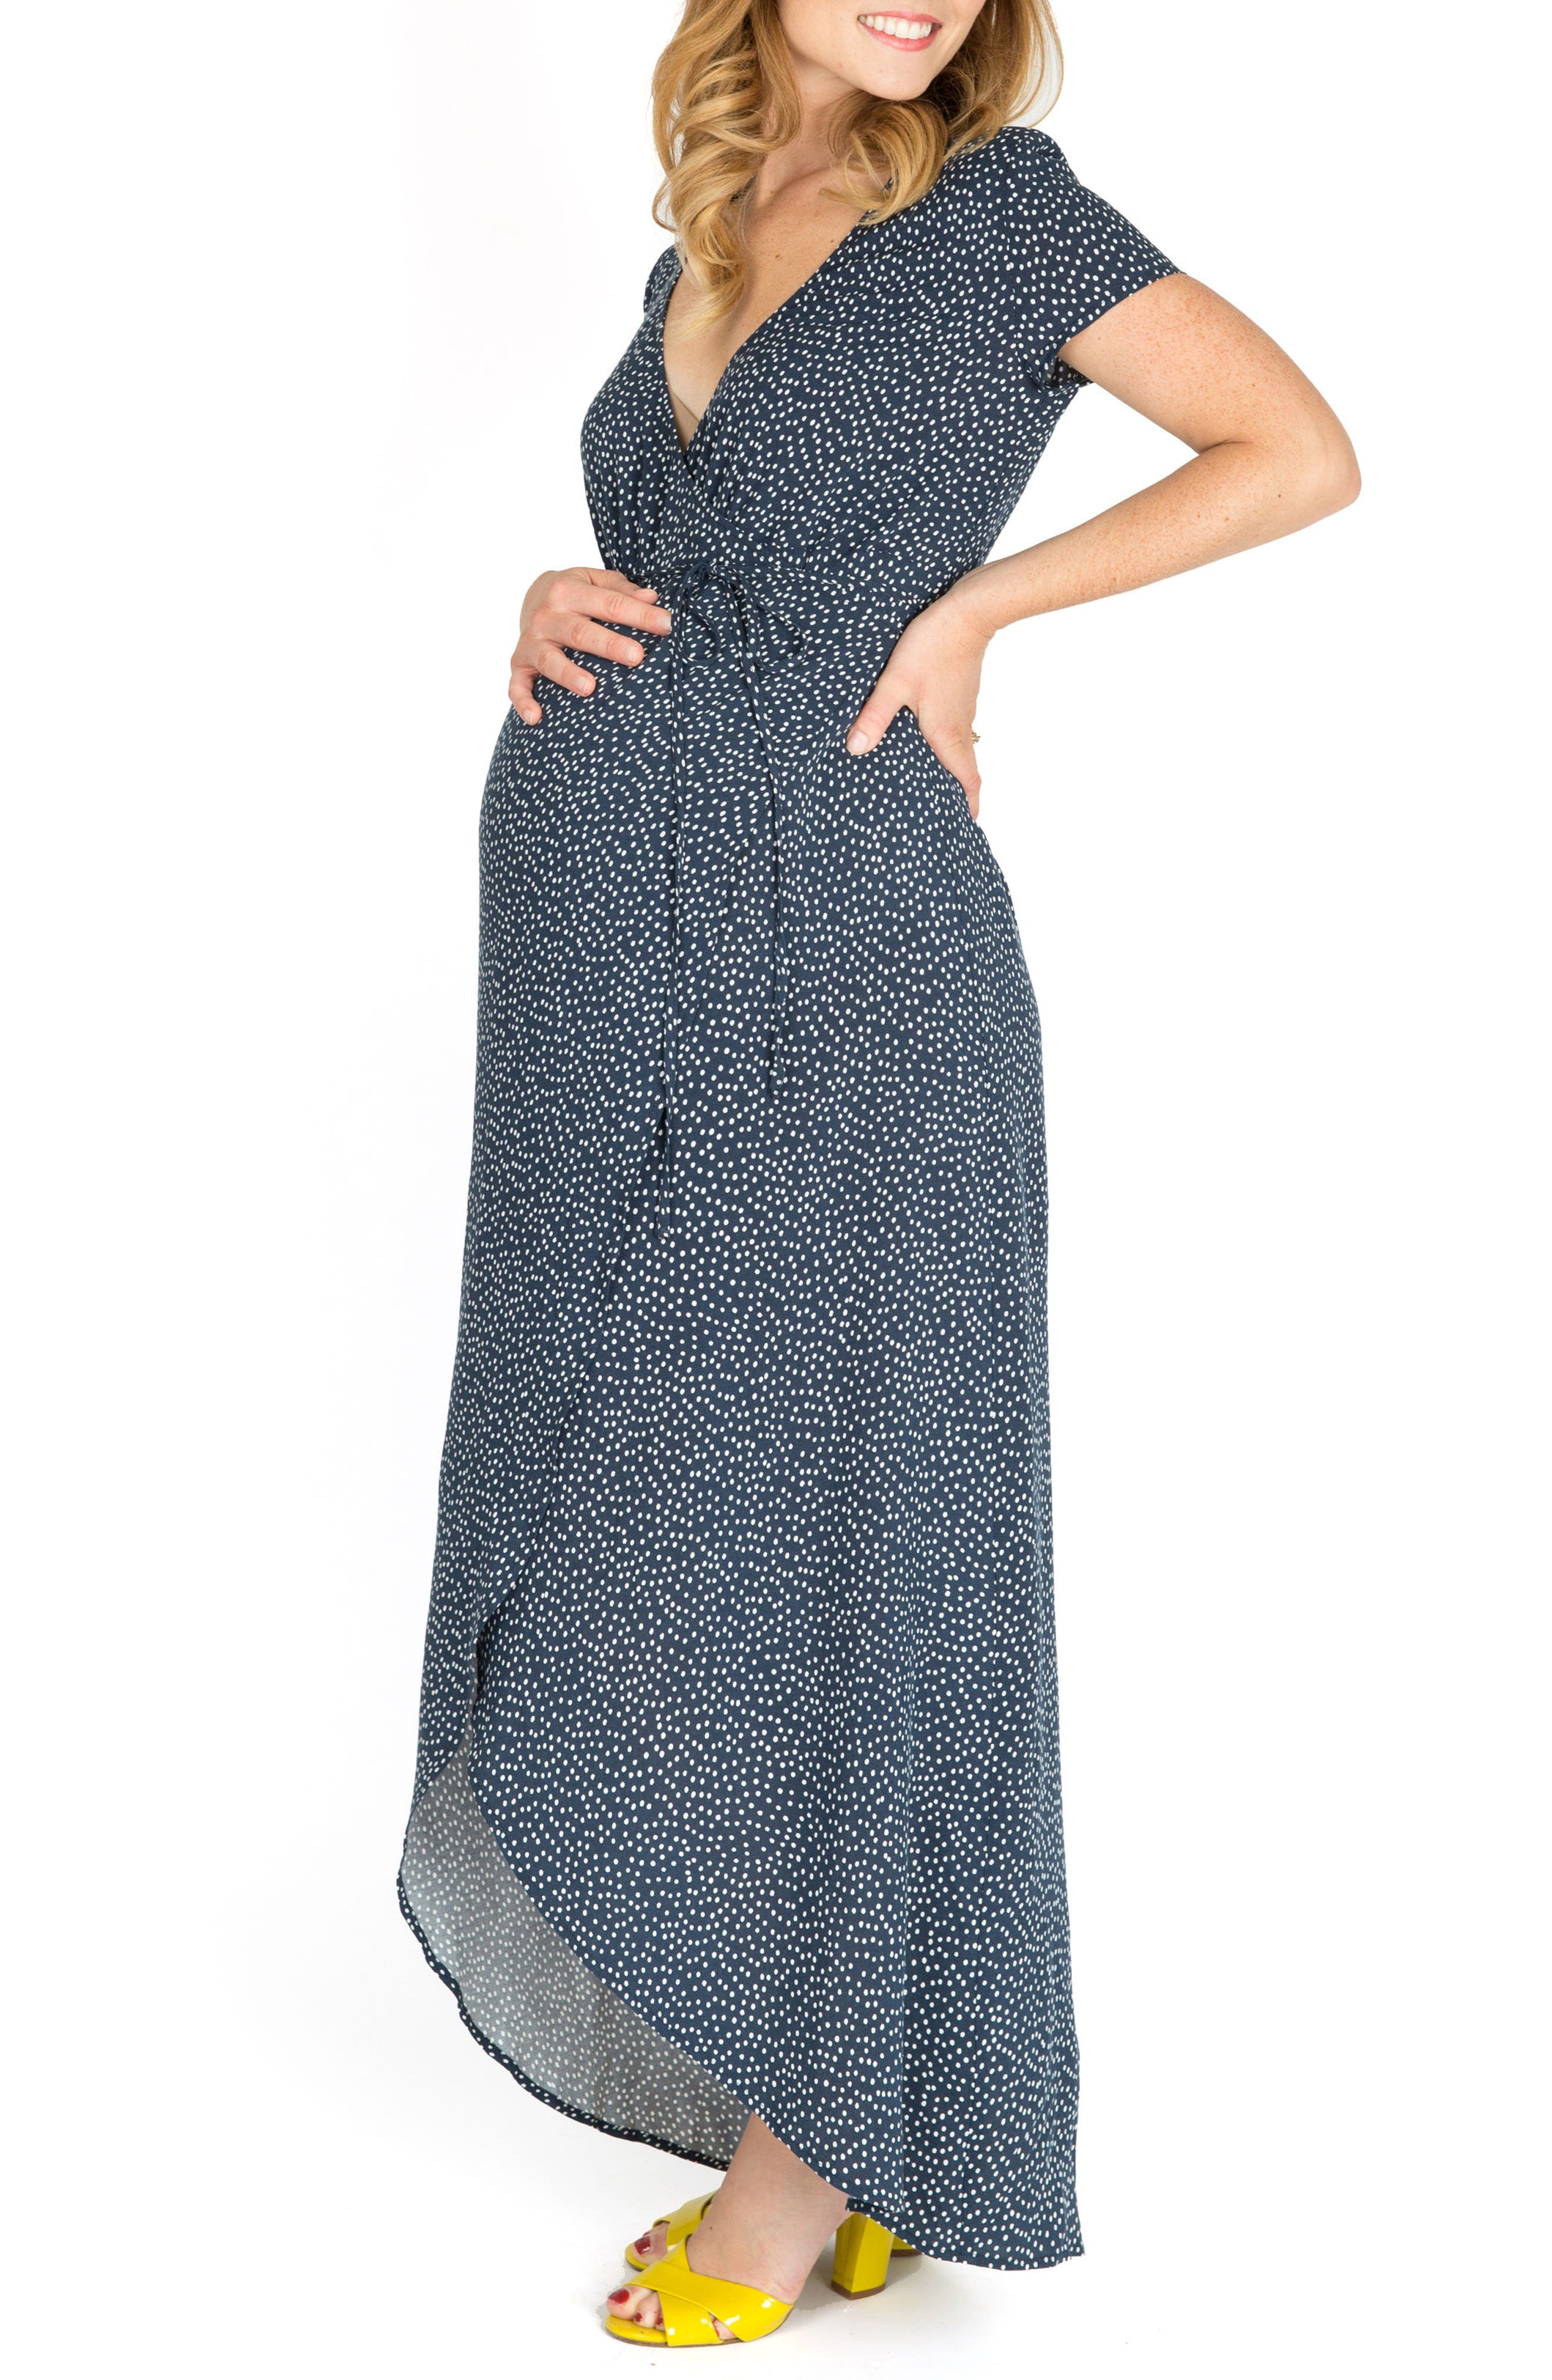 Delilah Maternity/Nursing Wrap Maxi Dress,                             Alternate thumbnail 3, color,                             NAVY DOT